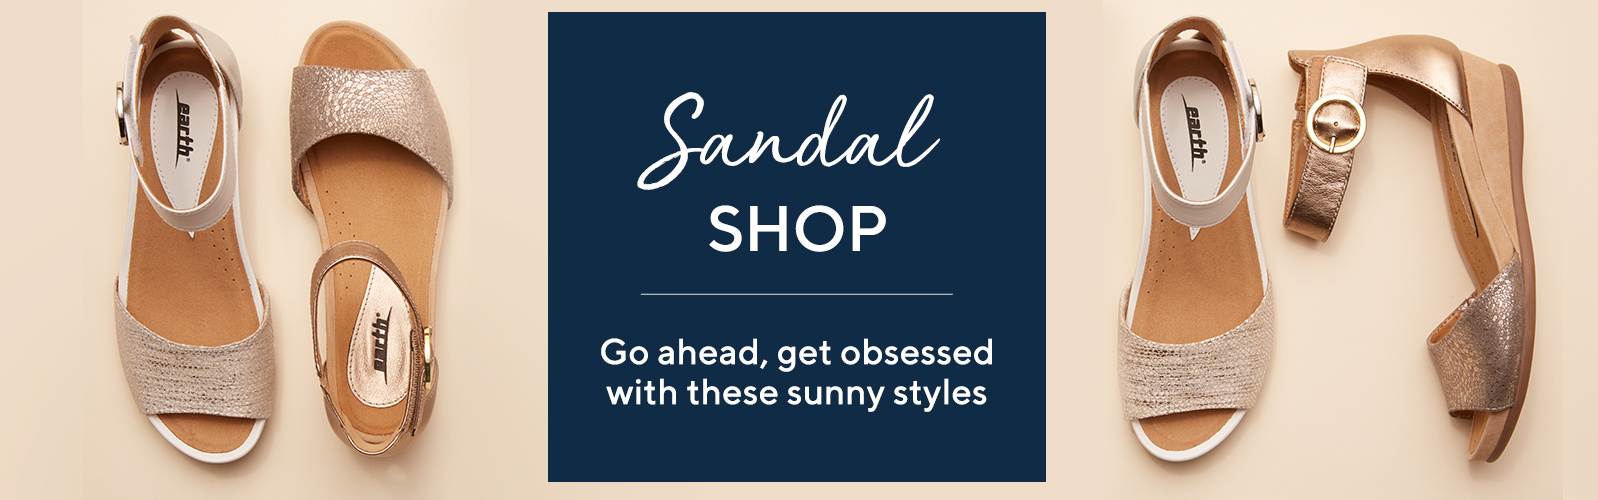 b6a7f4860104a Sandal Shop Go ahead, get obsessed with these sunny styles ...